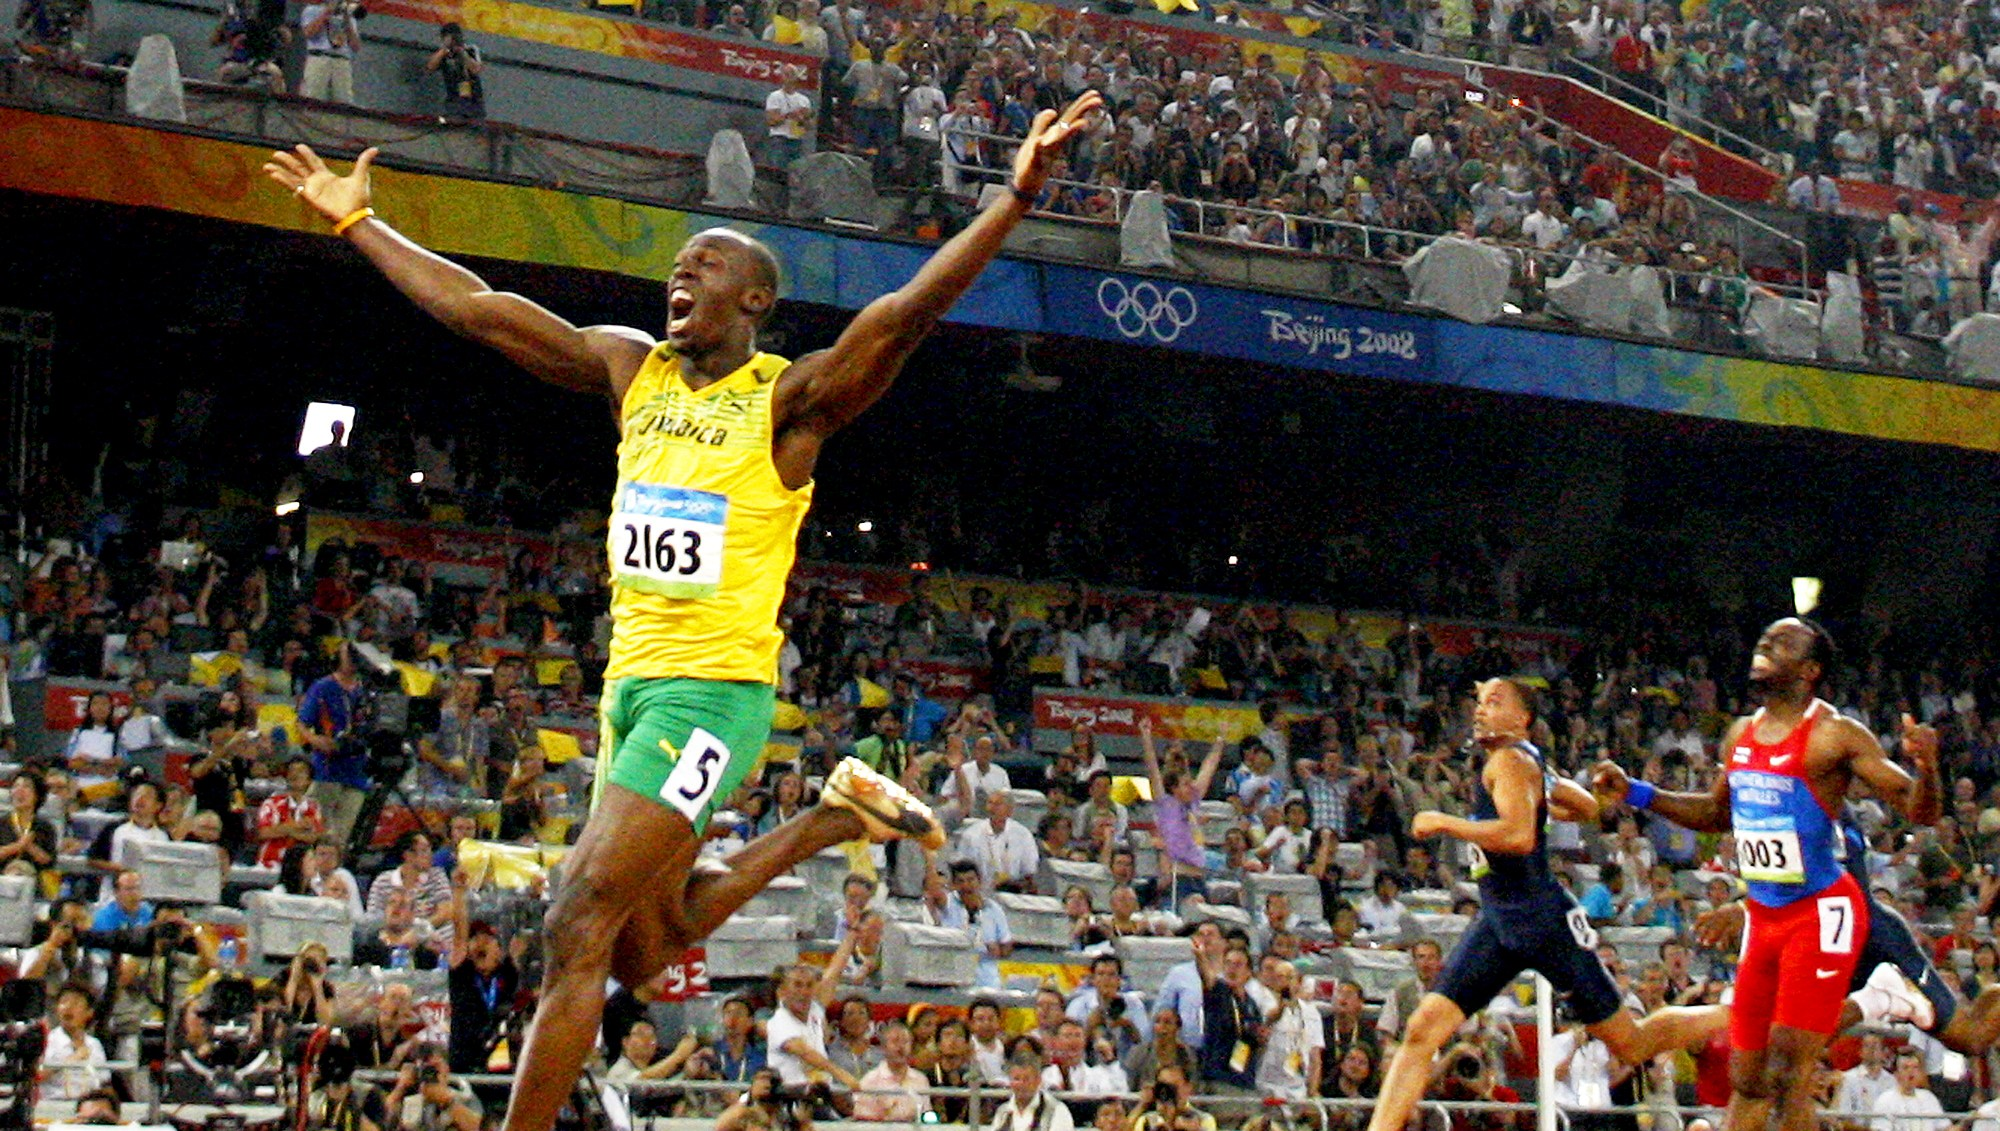 Jamaica's Usain Bolt celebrates winning the men's 200m final at the National stadium as part of the 2008 Beijing Olympic Games on August 20, 2008.